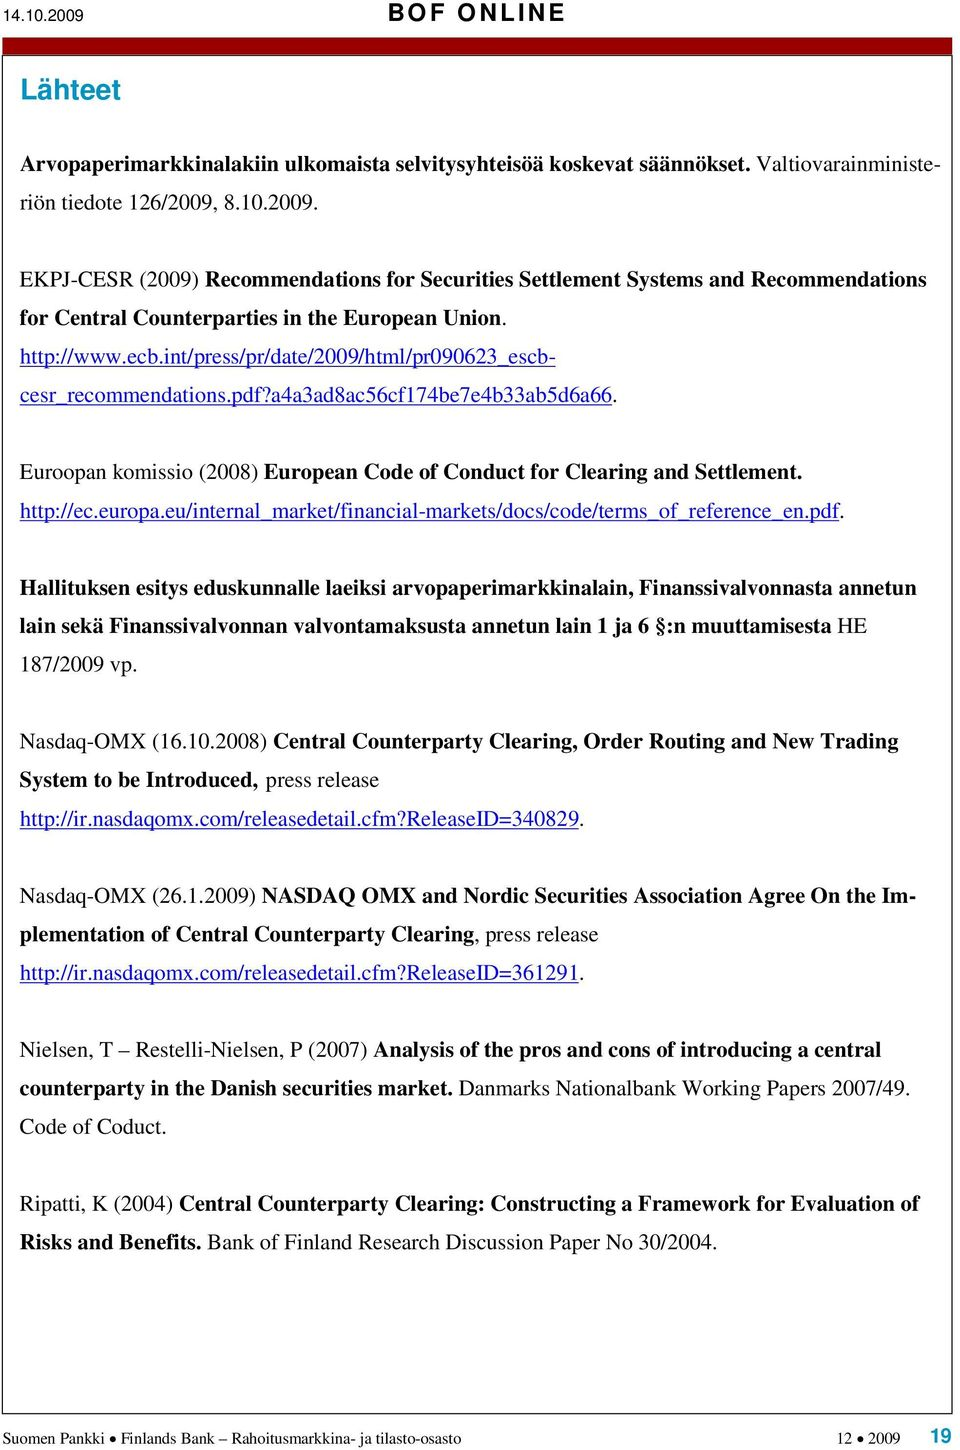 http://ec.europa.eu/internal_market/financial-markets/docs/code/terms_of_reference_en.pdf.